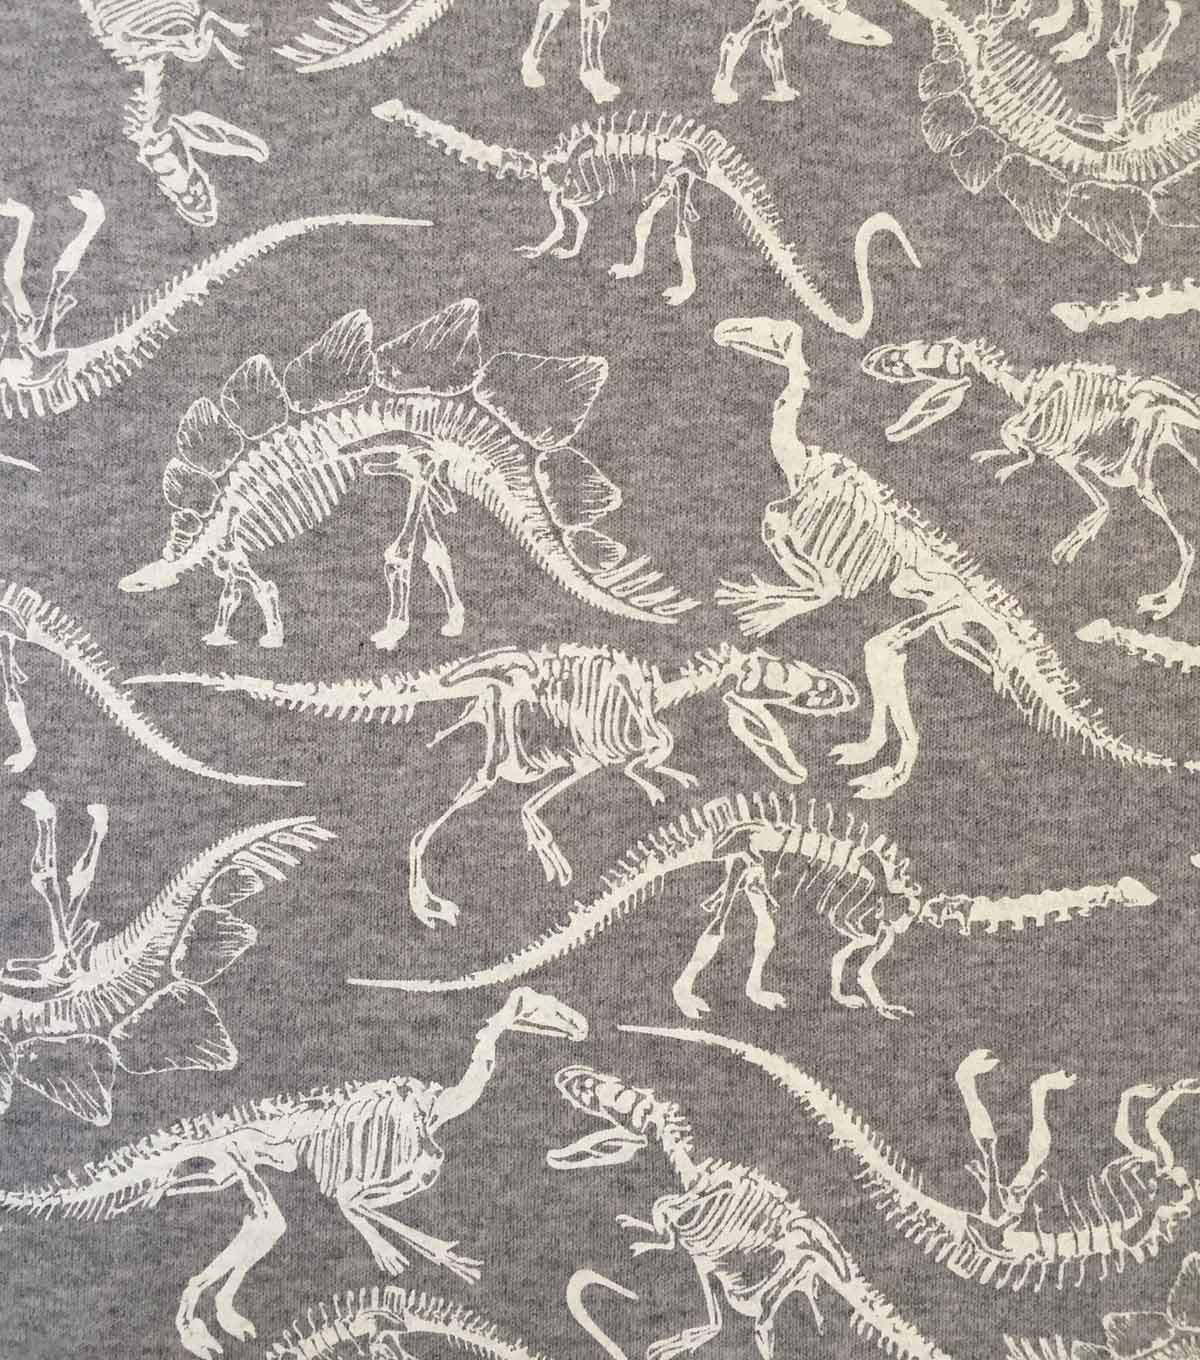 Doodles Cotton Interlock Knit Fabric-Heather Gray Dino Skeletons